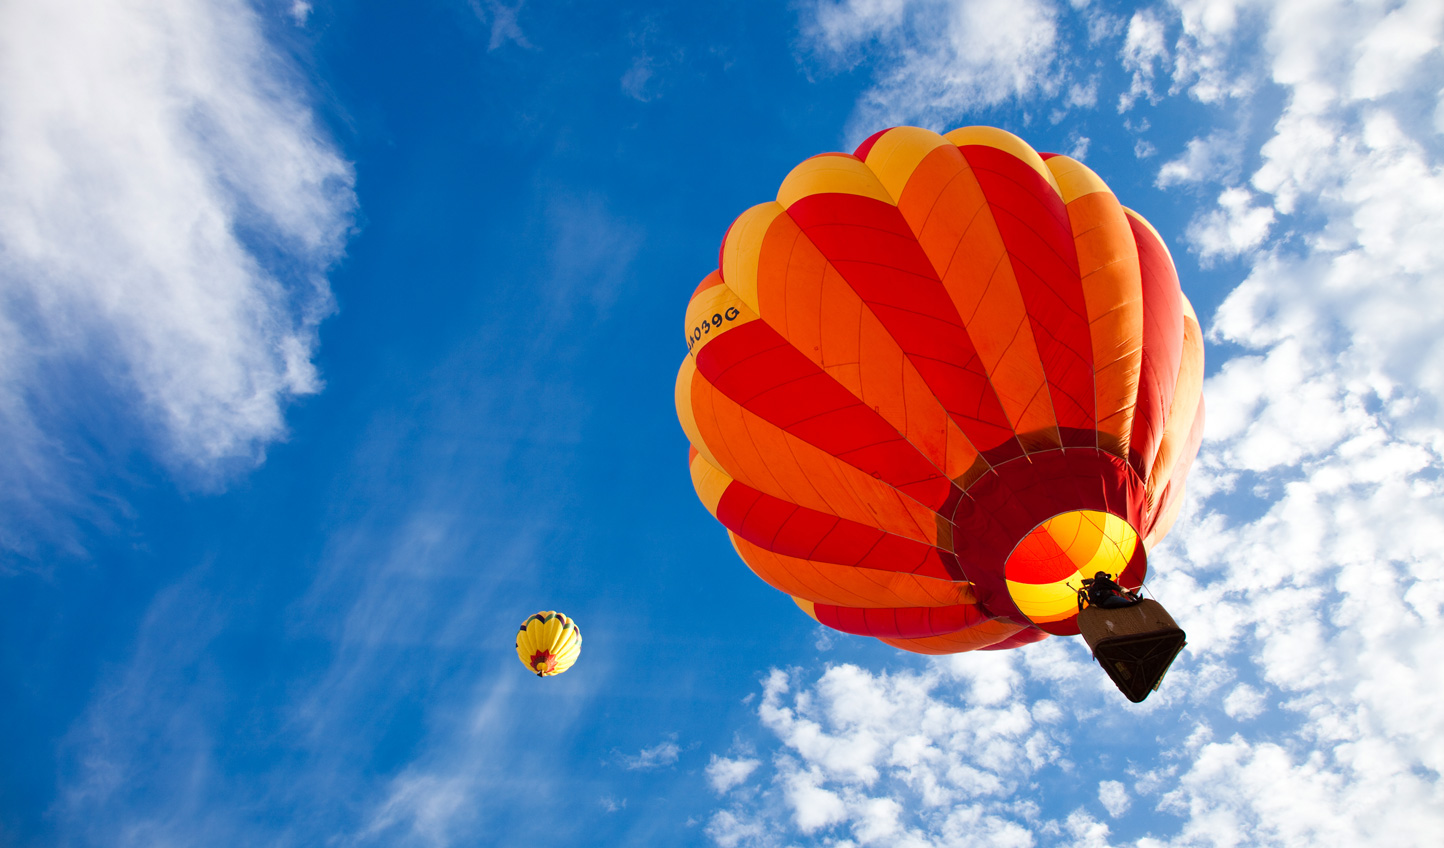 Take a spectacular hot air balloon ride over the city